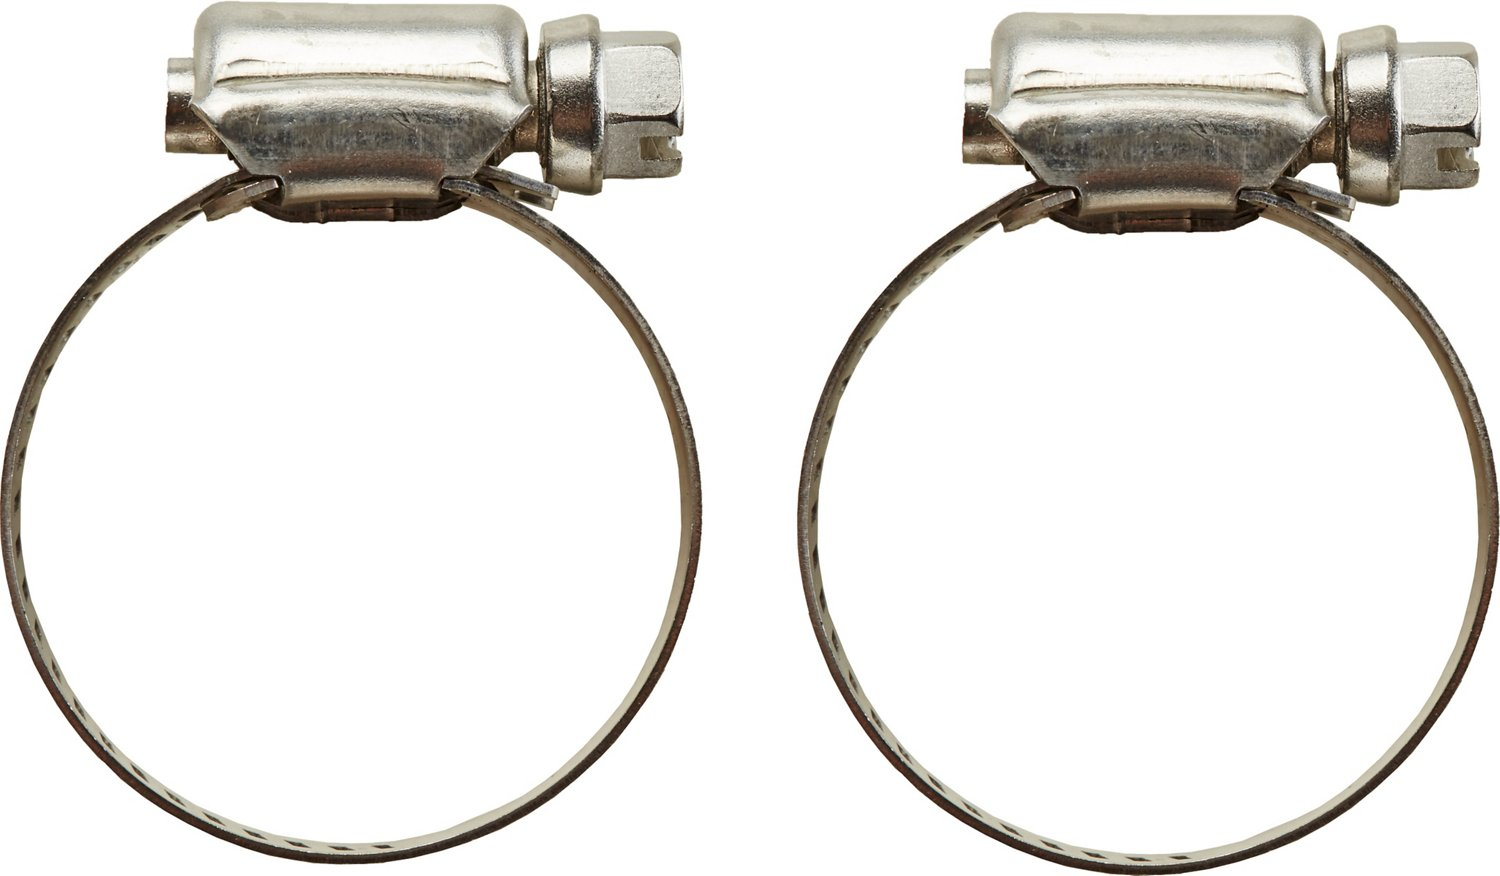 Marine Raider Stainless-Steel Hose Clamps 2-Pack - view number 1